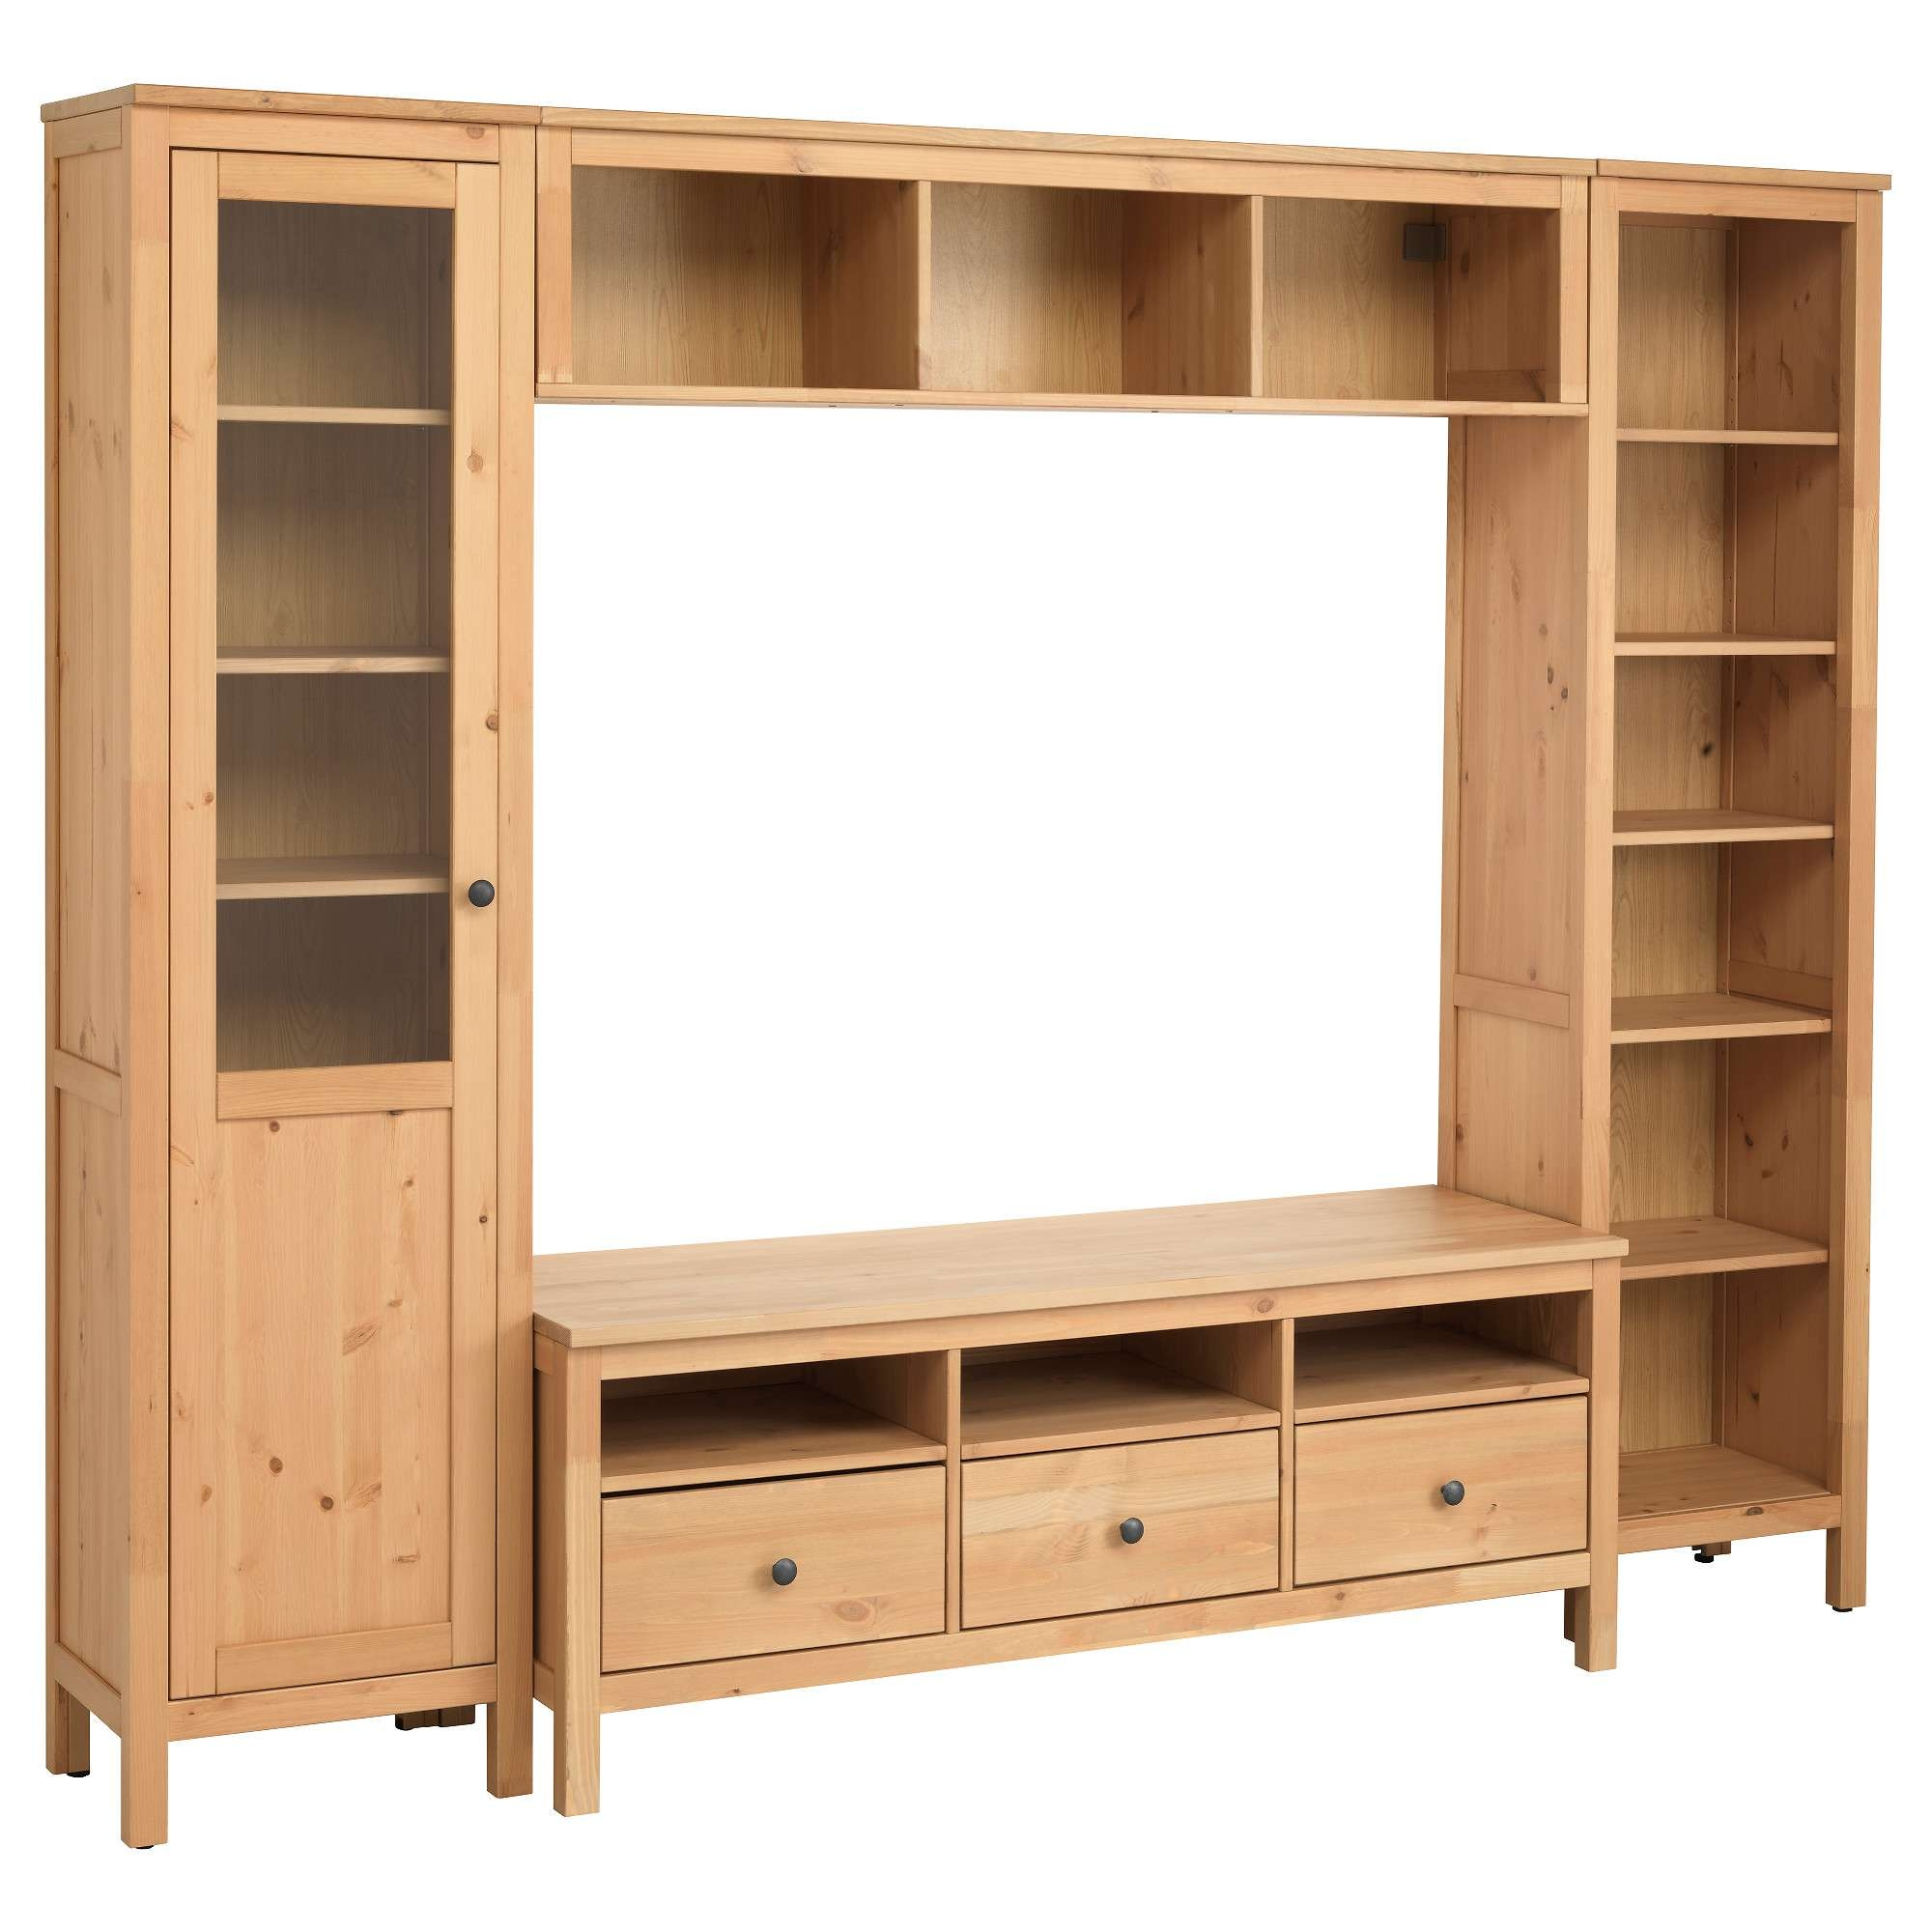 Large Tv Stands & Entertainment Centers – Ikea With Regard To Light Brown Tv Stands (View 6 of 20)